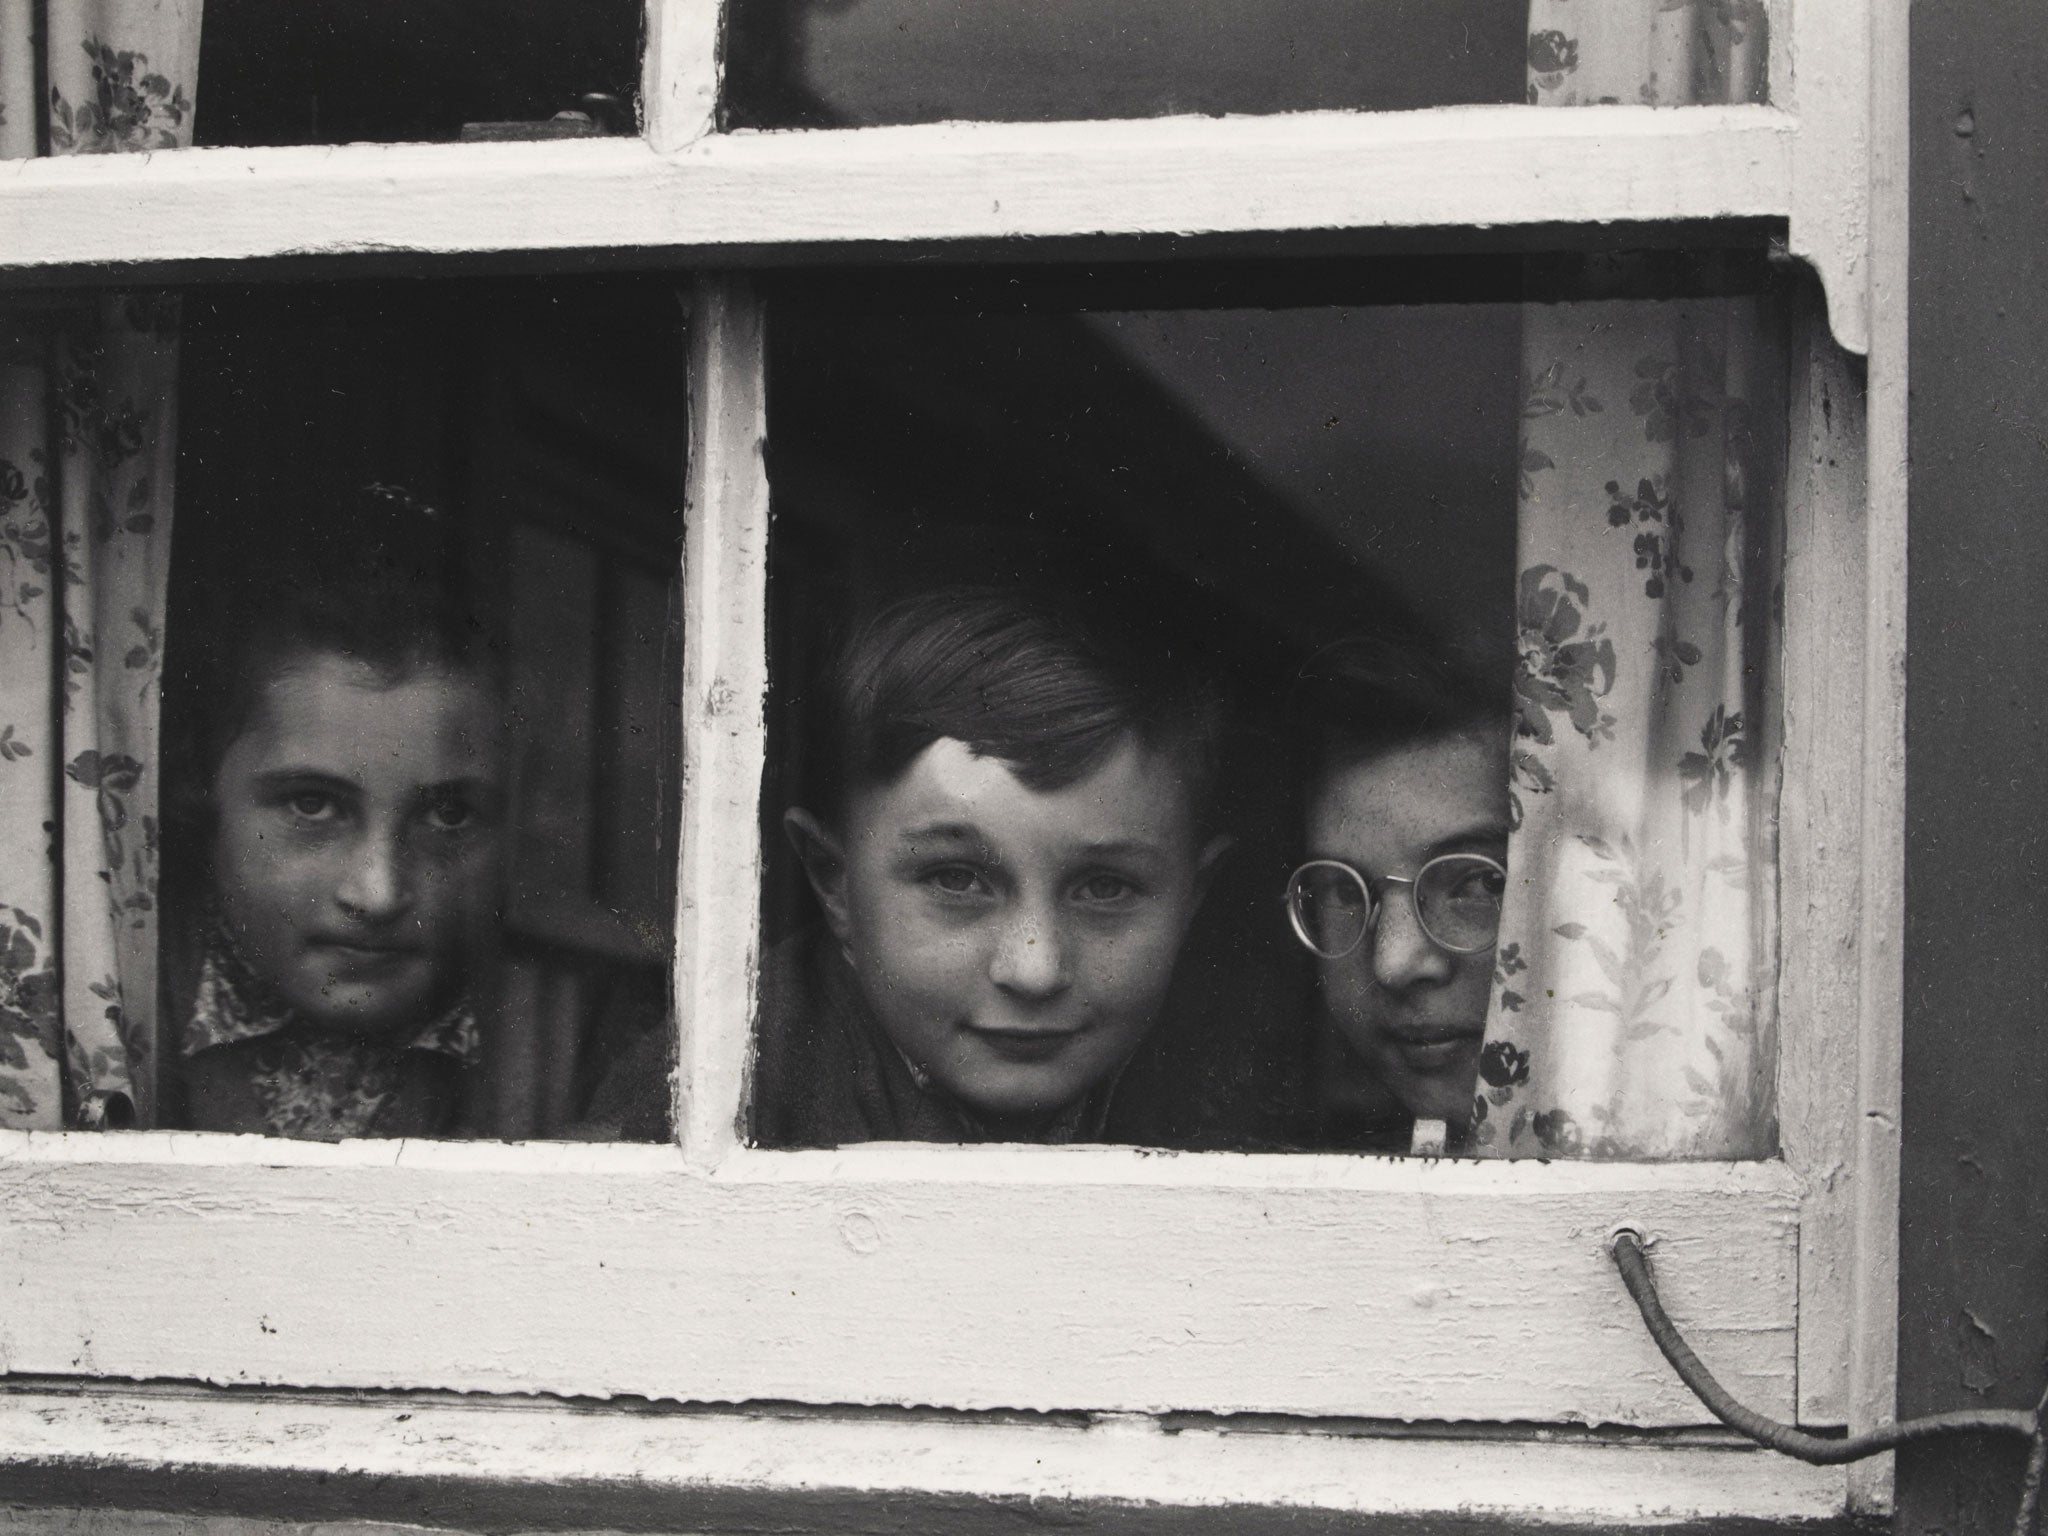 Paul Strand photographed people living on the 'edge of society' in the Hebrides